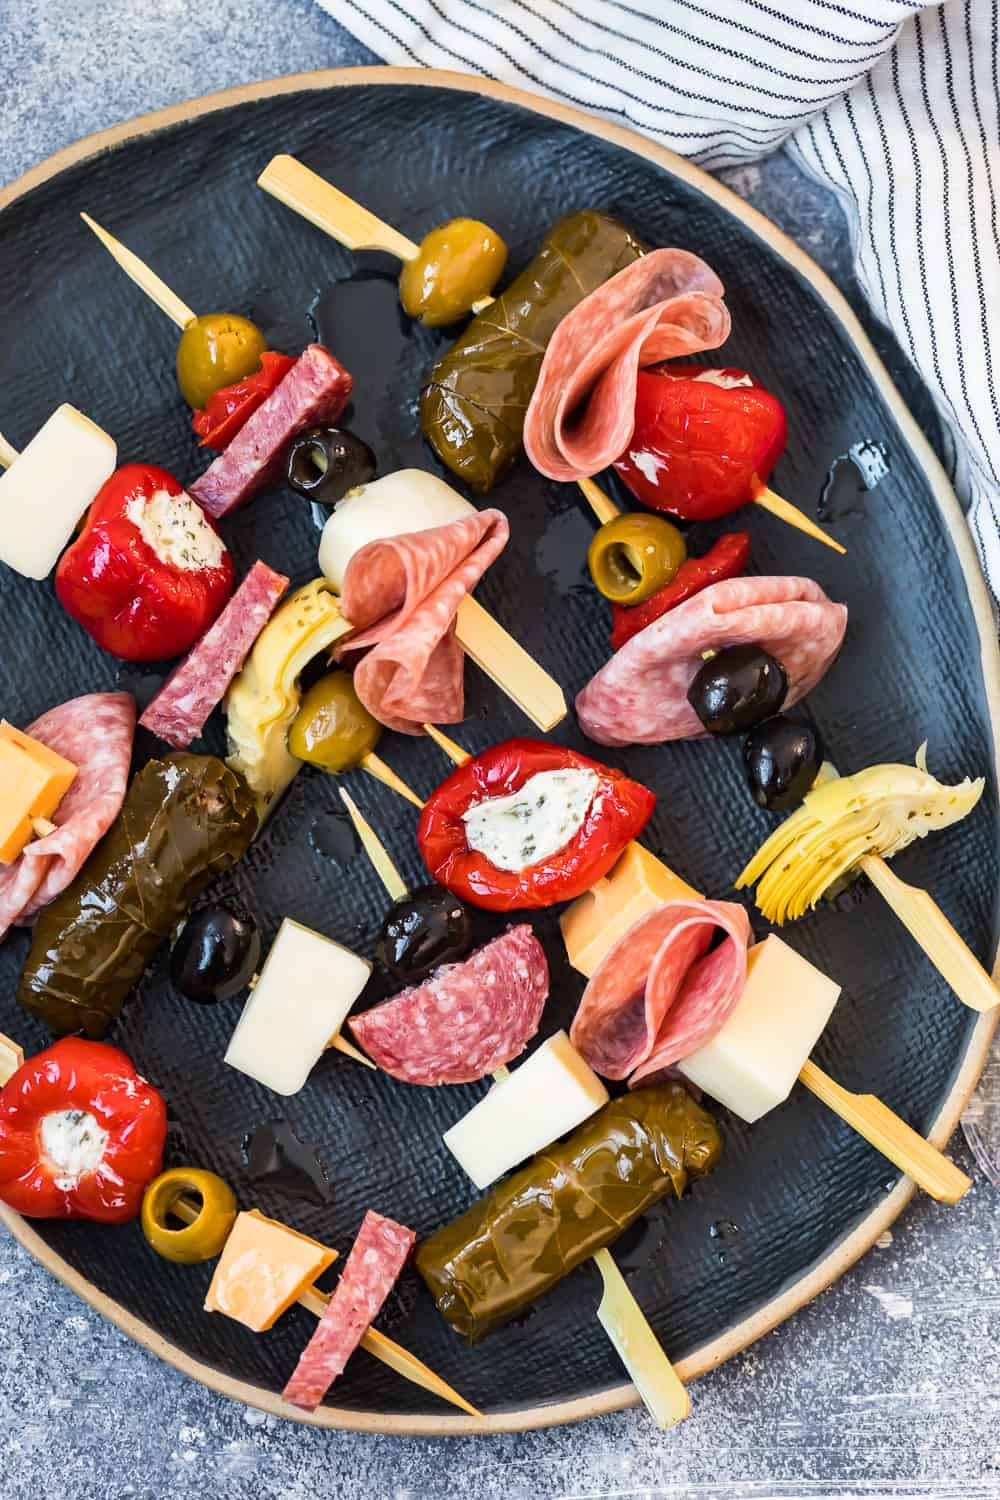 several antipasti skewers on a black plate